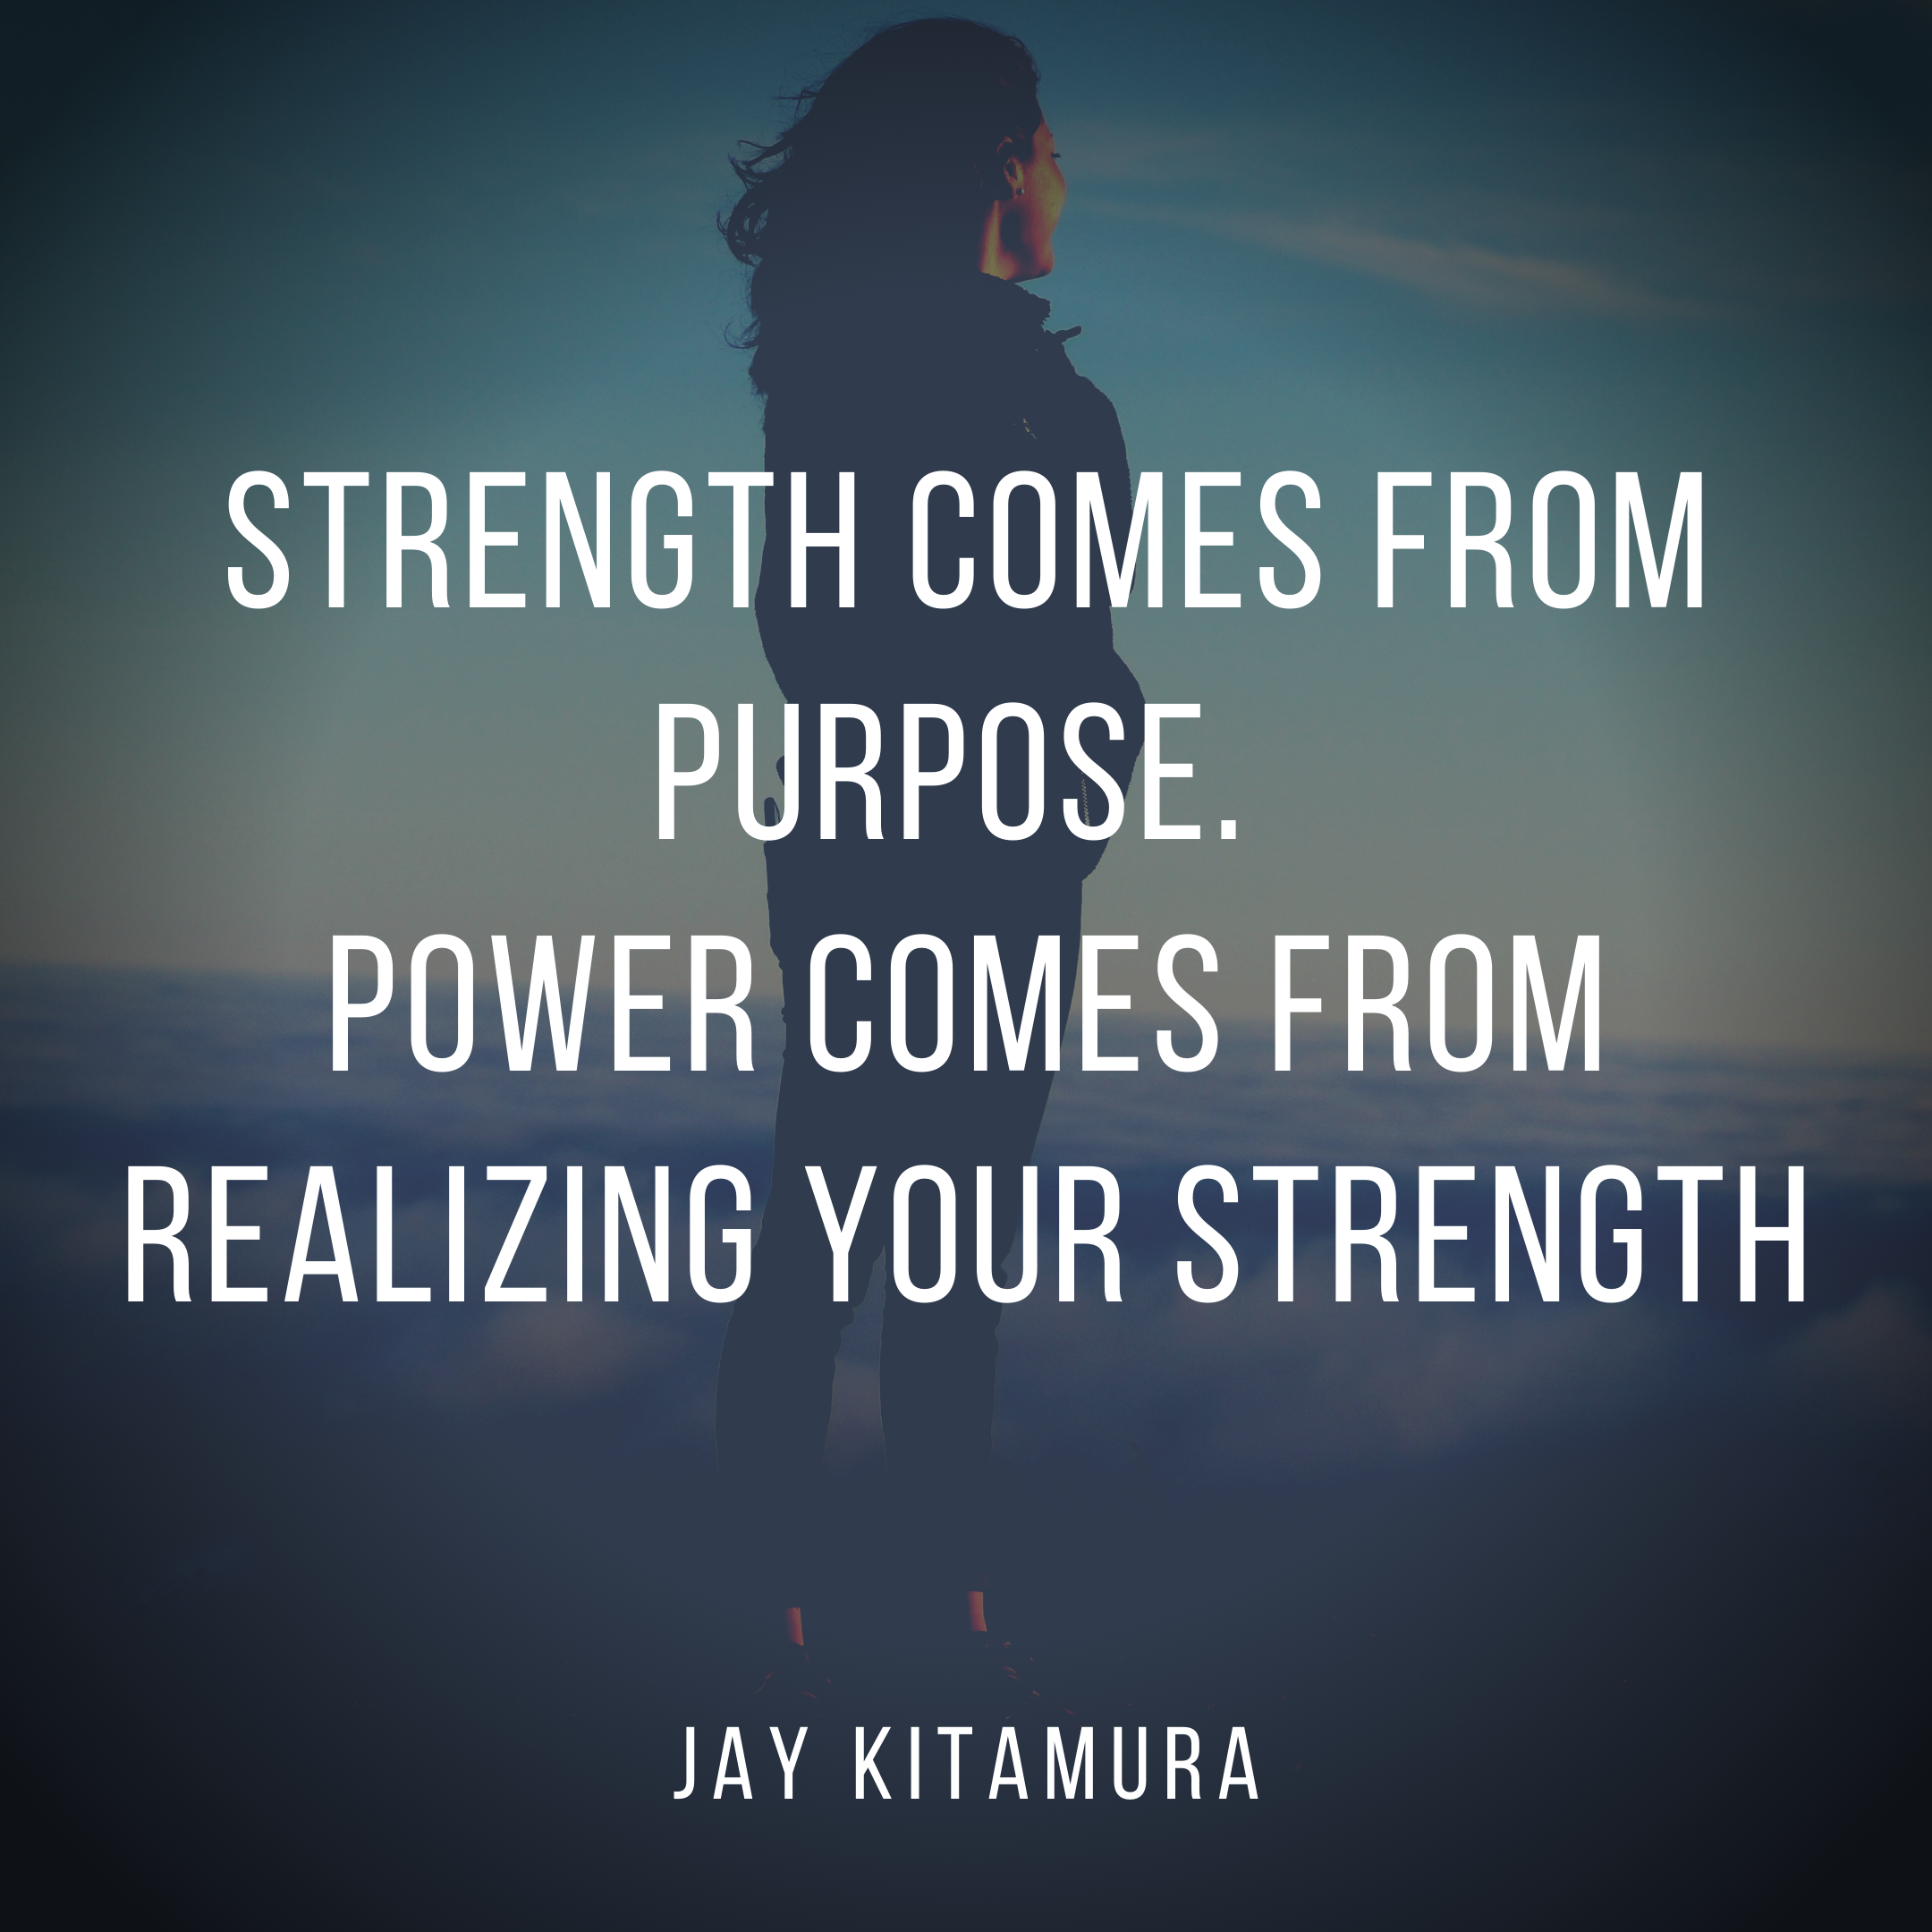 [Image] Strength and Power